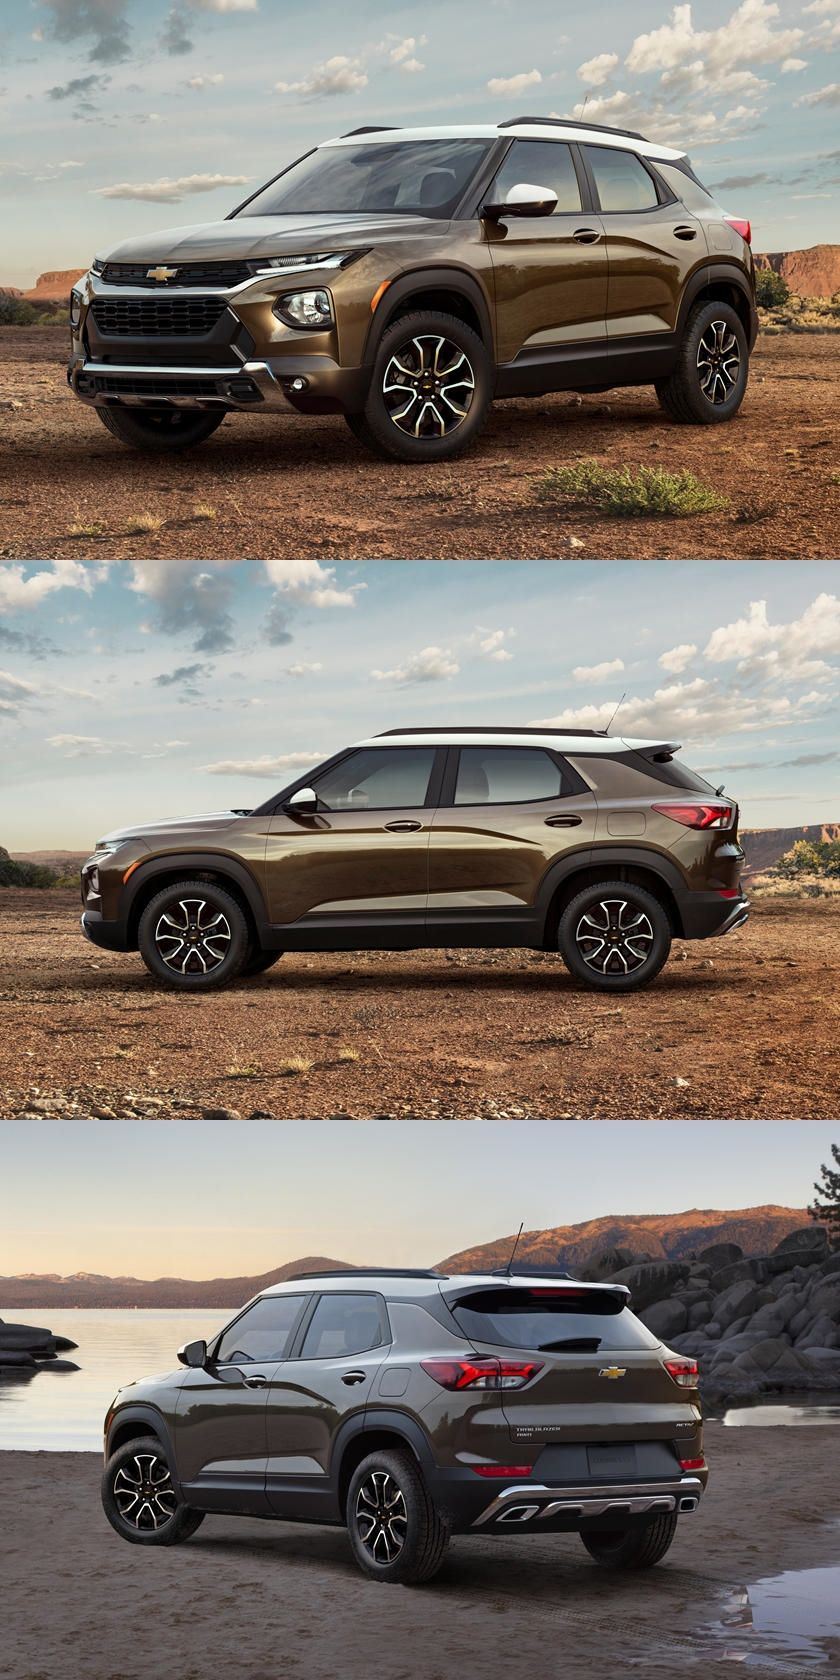 2021 Chevrolet Trailblazer Has A Major Advantage Over The Trax Here S Another Reason Why You Should Buy A 20 In 2020 Chevrolet Trailblazer Chevrolet Chevy Trailblazer